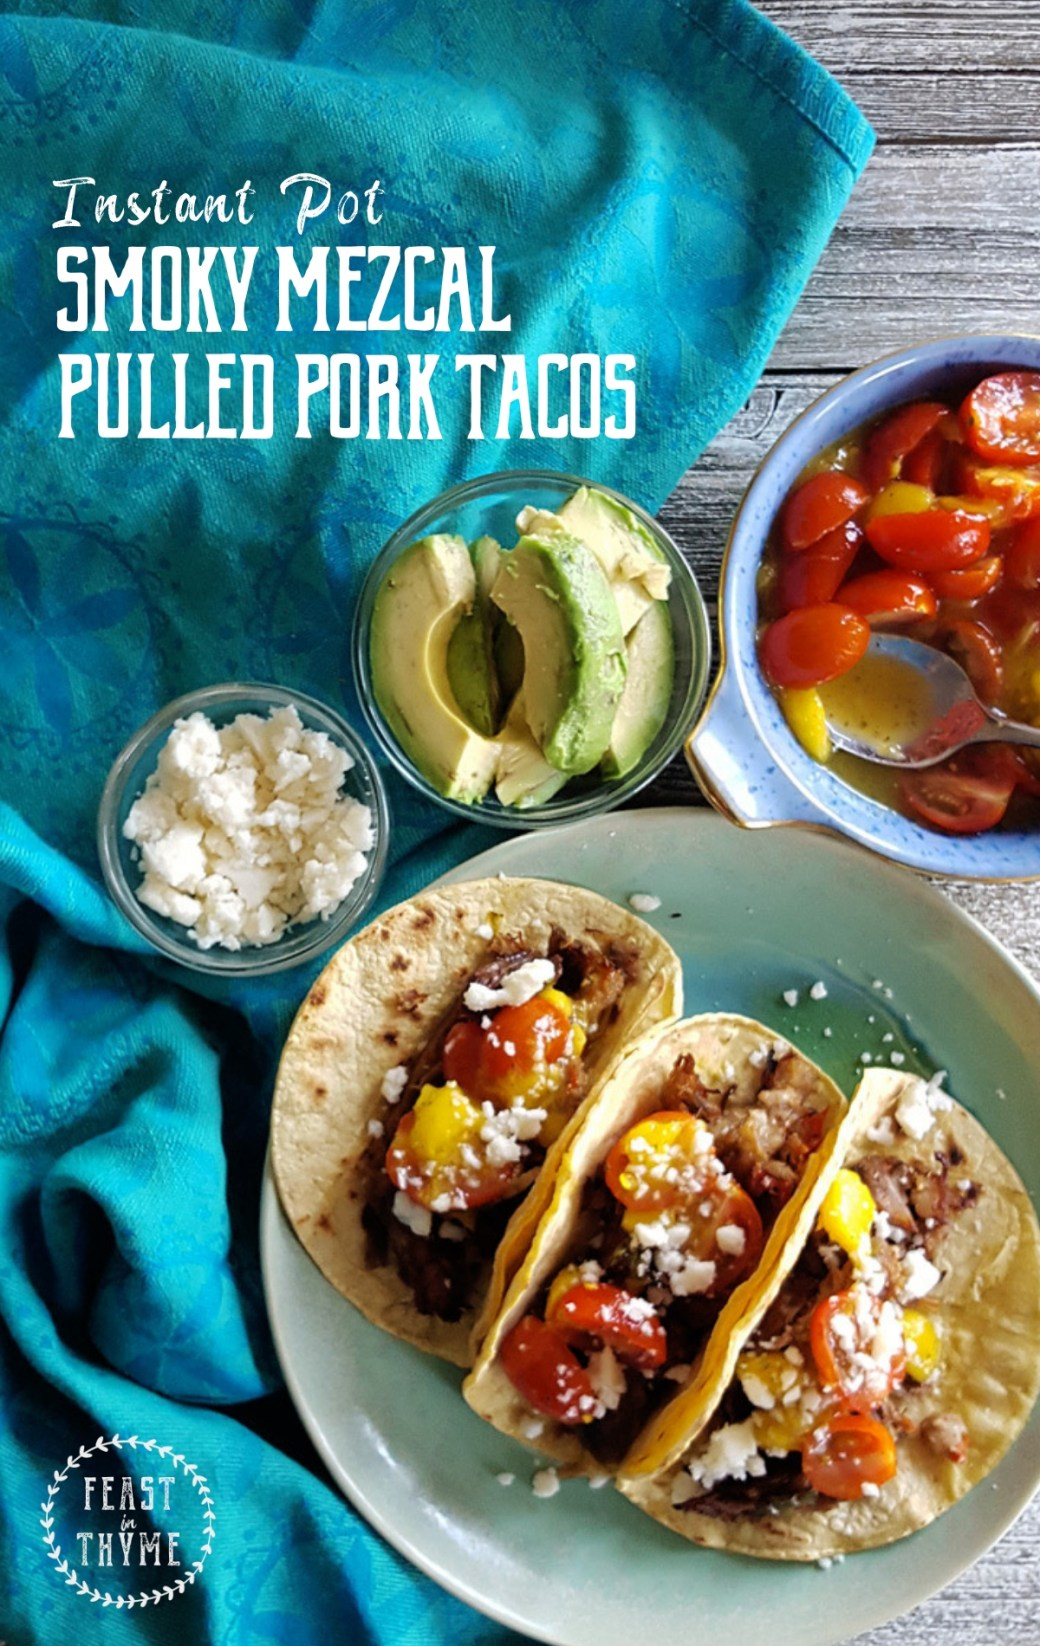 Instant Pot Smoky Mezcal Pulled Pork Tacos